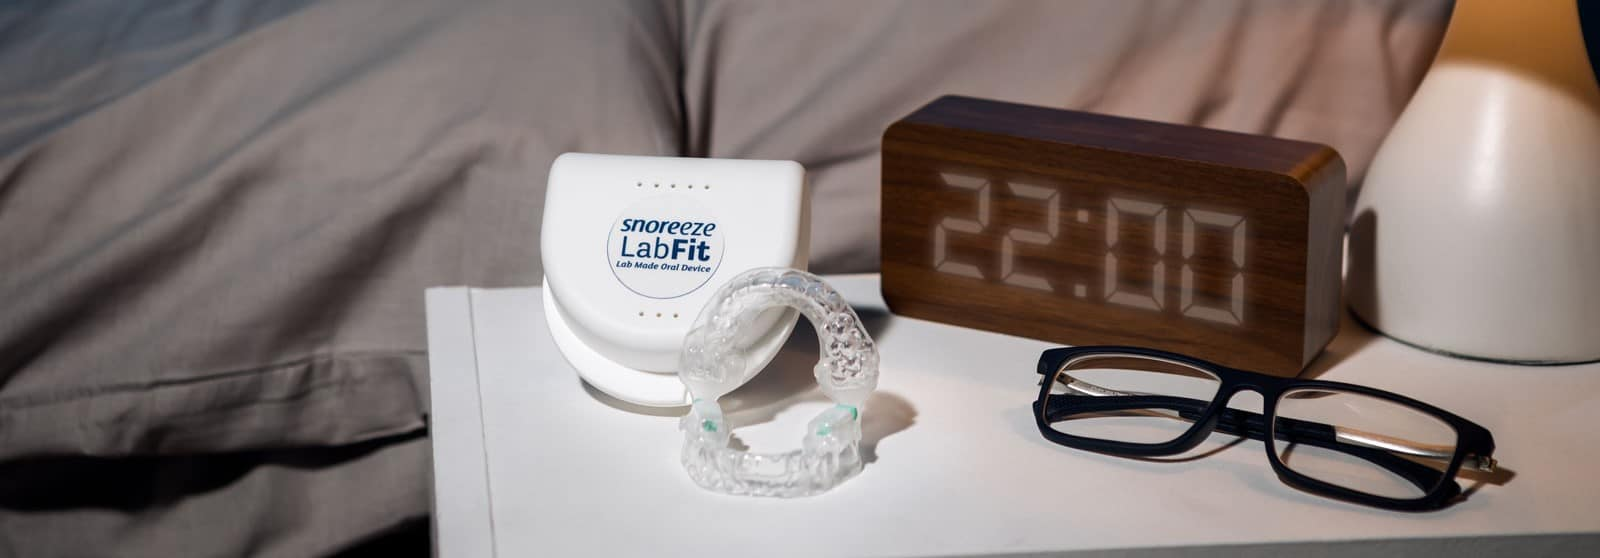 Snoreeze LabFit Oral Device: For loud snoring and obstructive sleep apnoea Snoreeze